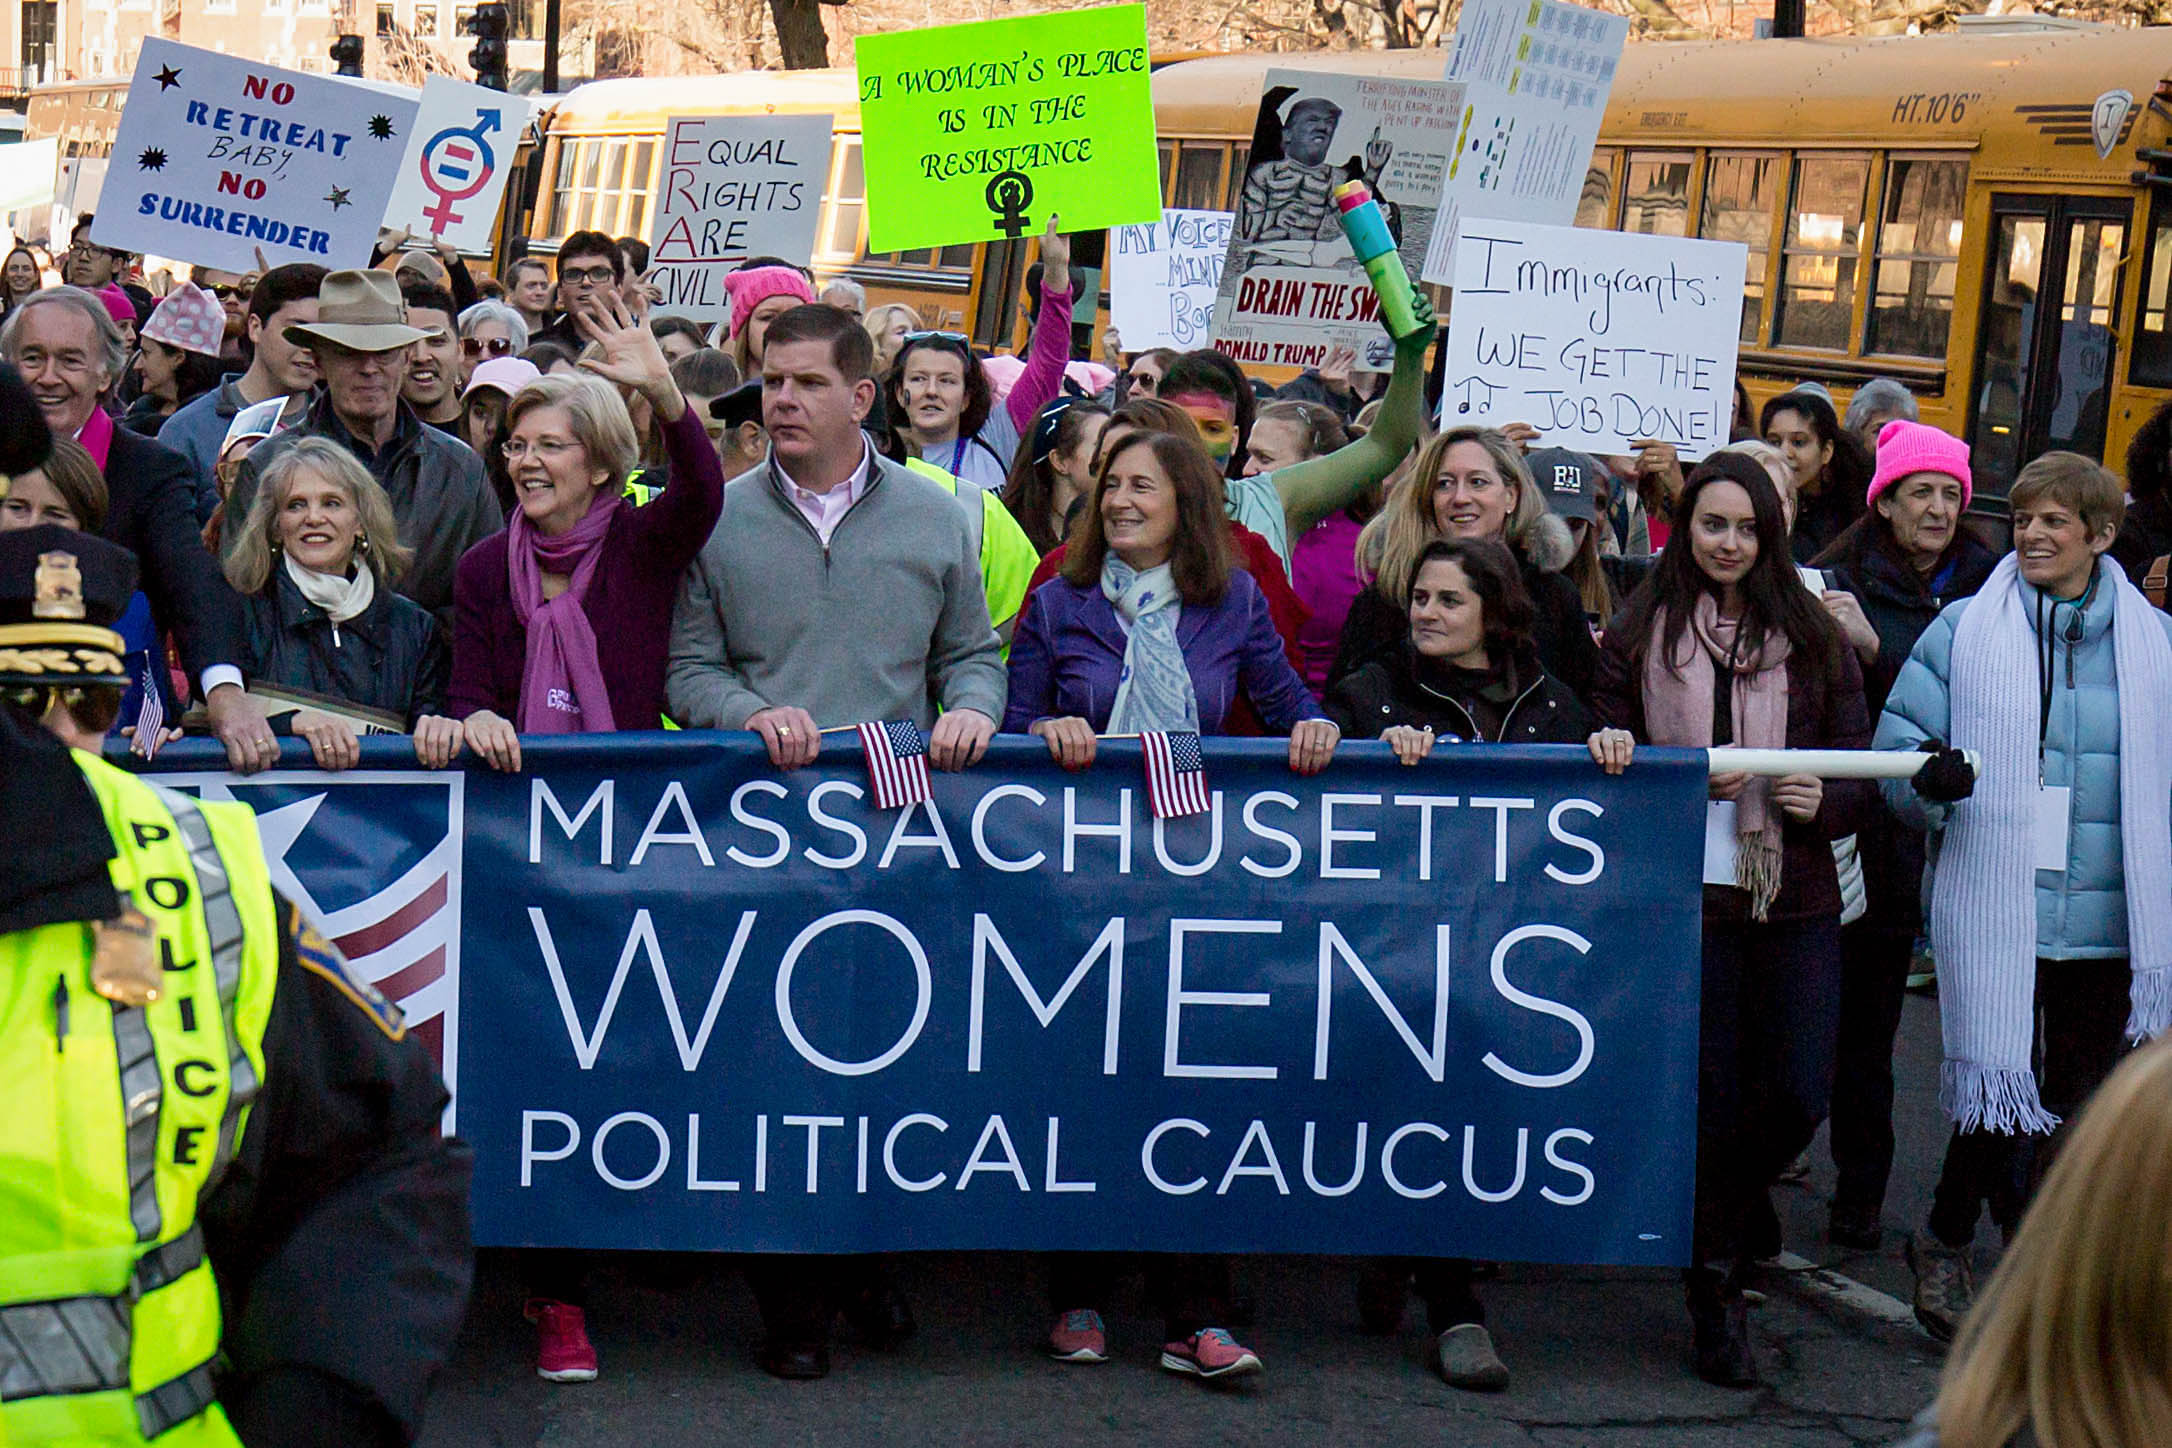 Boston Mayor Marty Walsh and Sen. Elizabeth Warren march with women holding up a sign for the Massachusetts Womens Political Caucus on Jan. 21, 2017. (Photo by Alastair Pike)